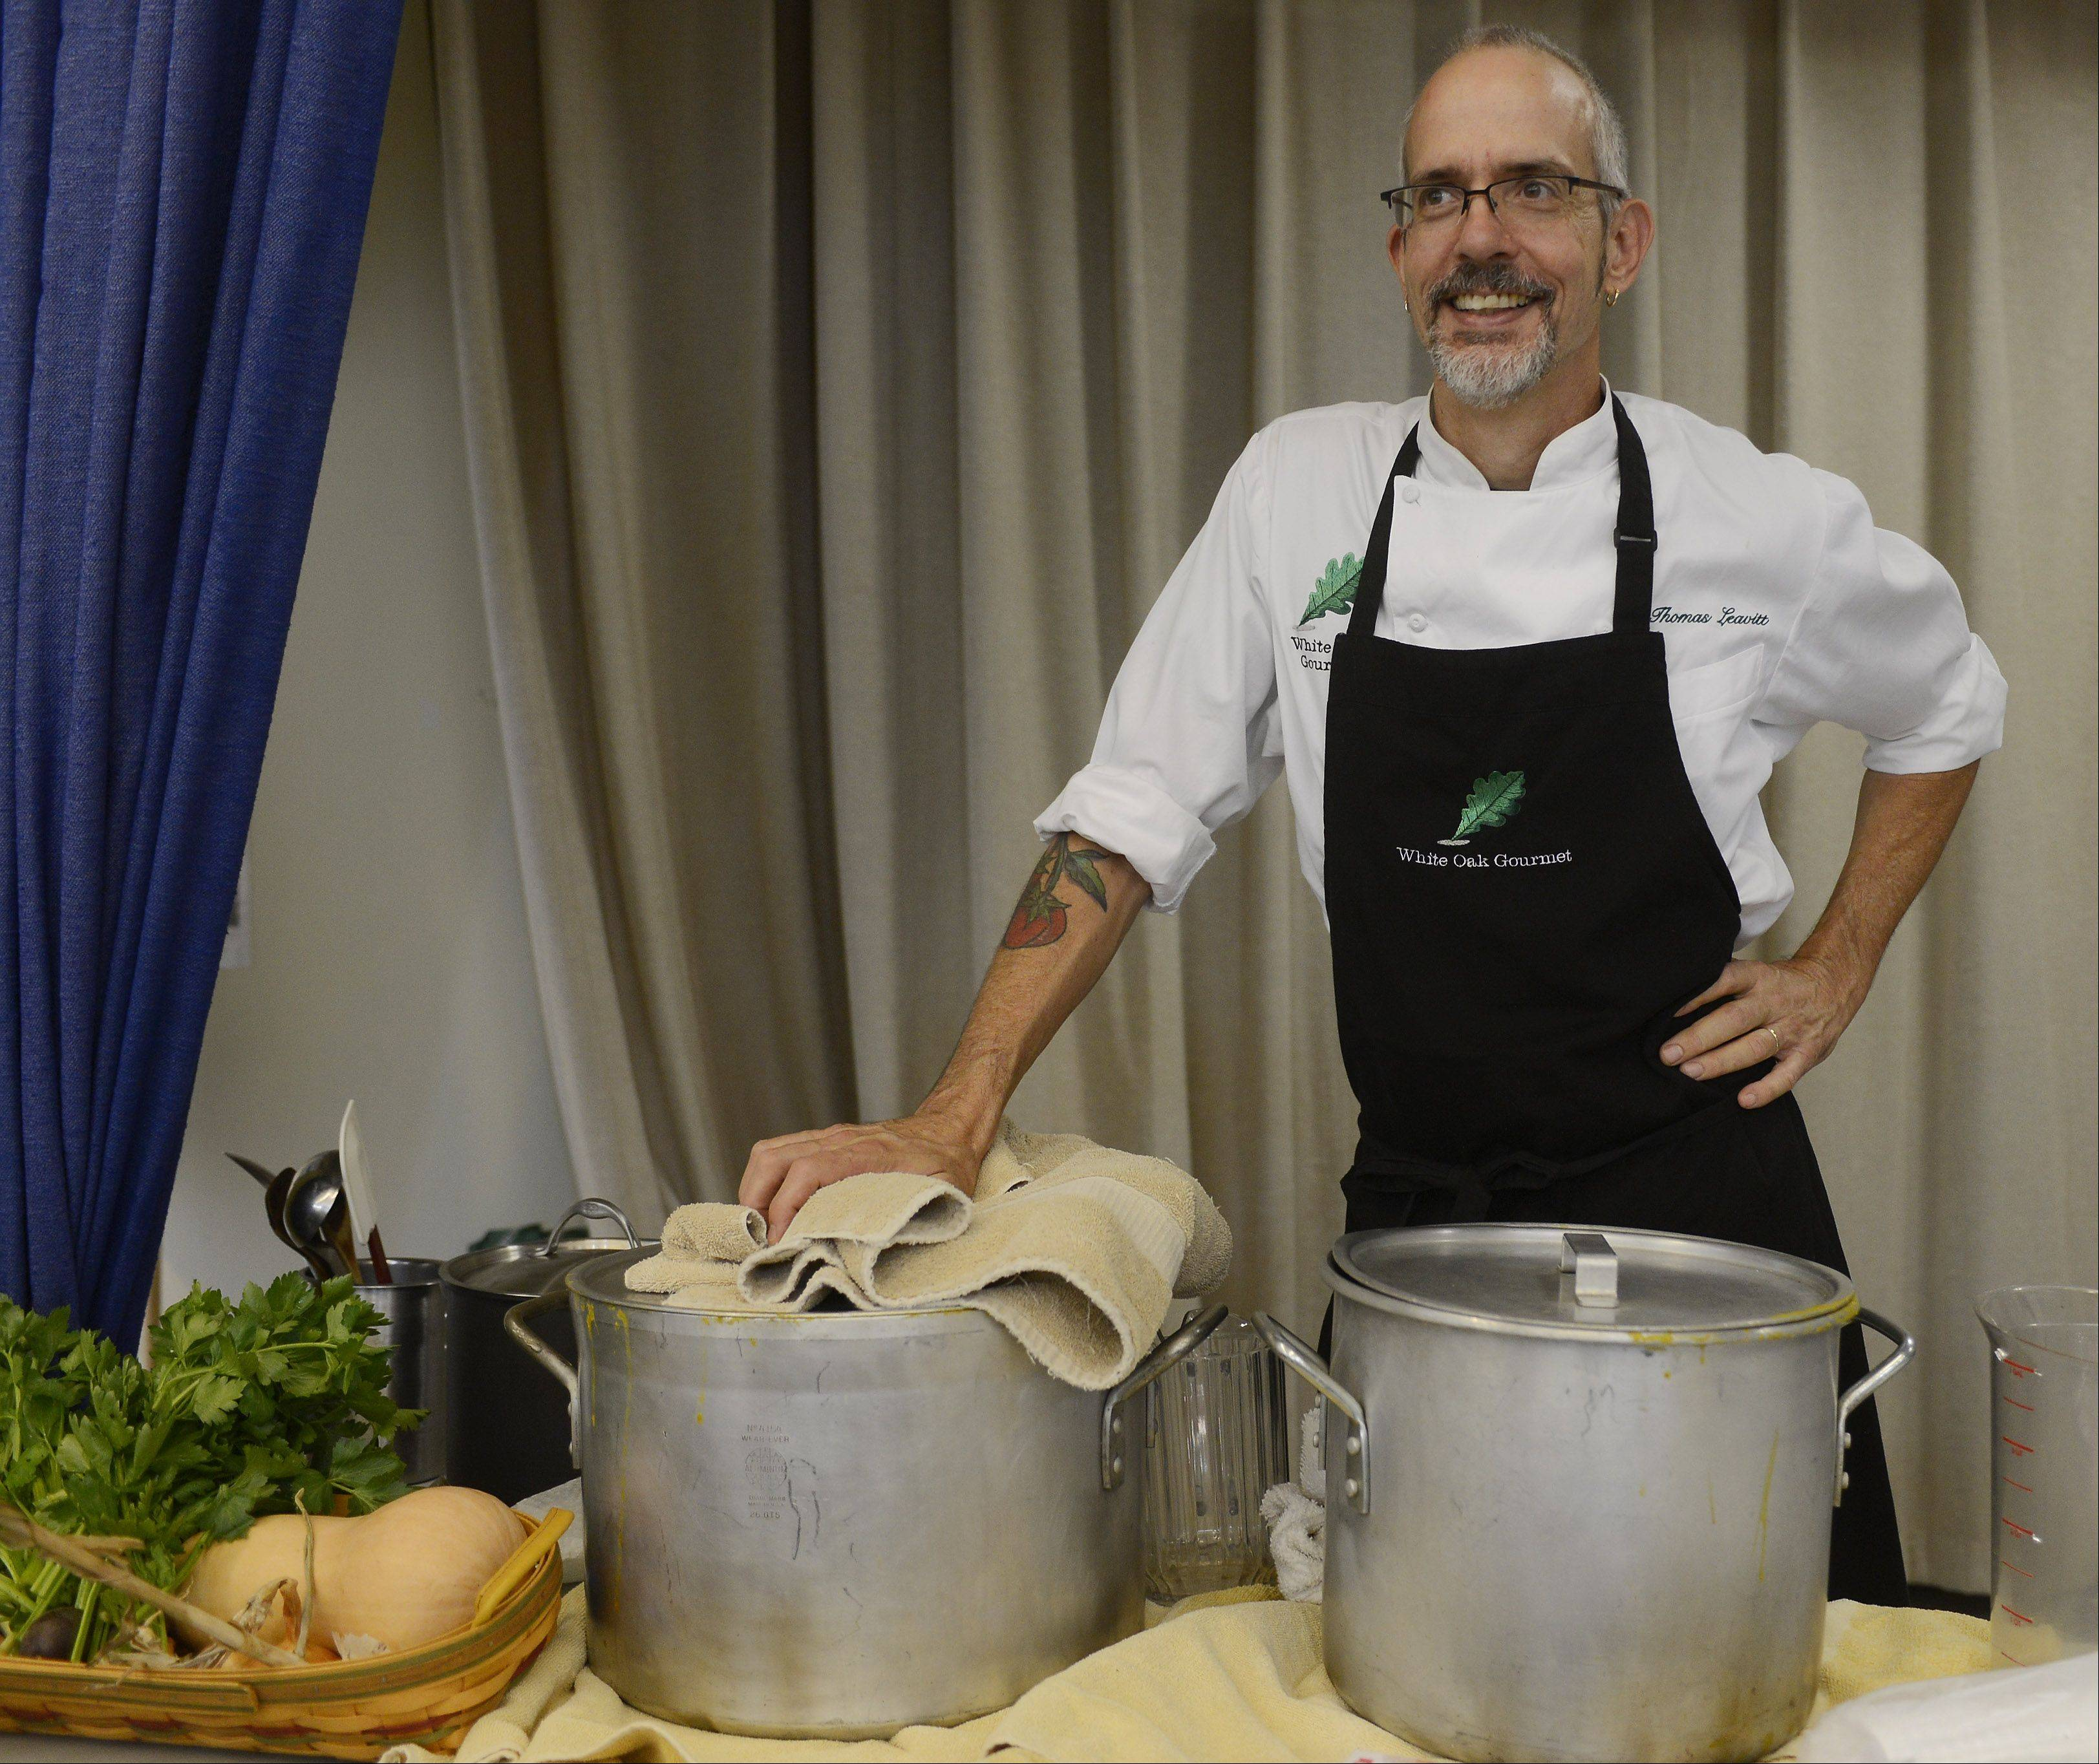 Chef Thomas Leavitt of White Oak Gourmet is ready to serve butternut squash soup, made from vegetables grown in the school's community garden.